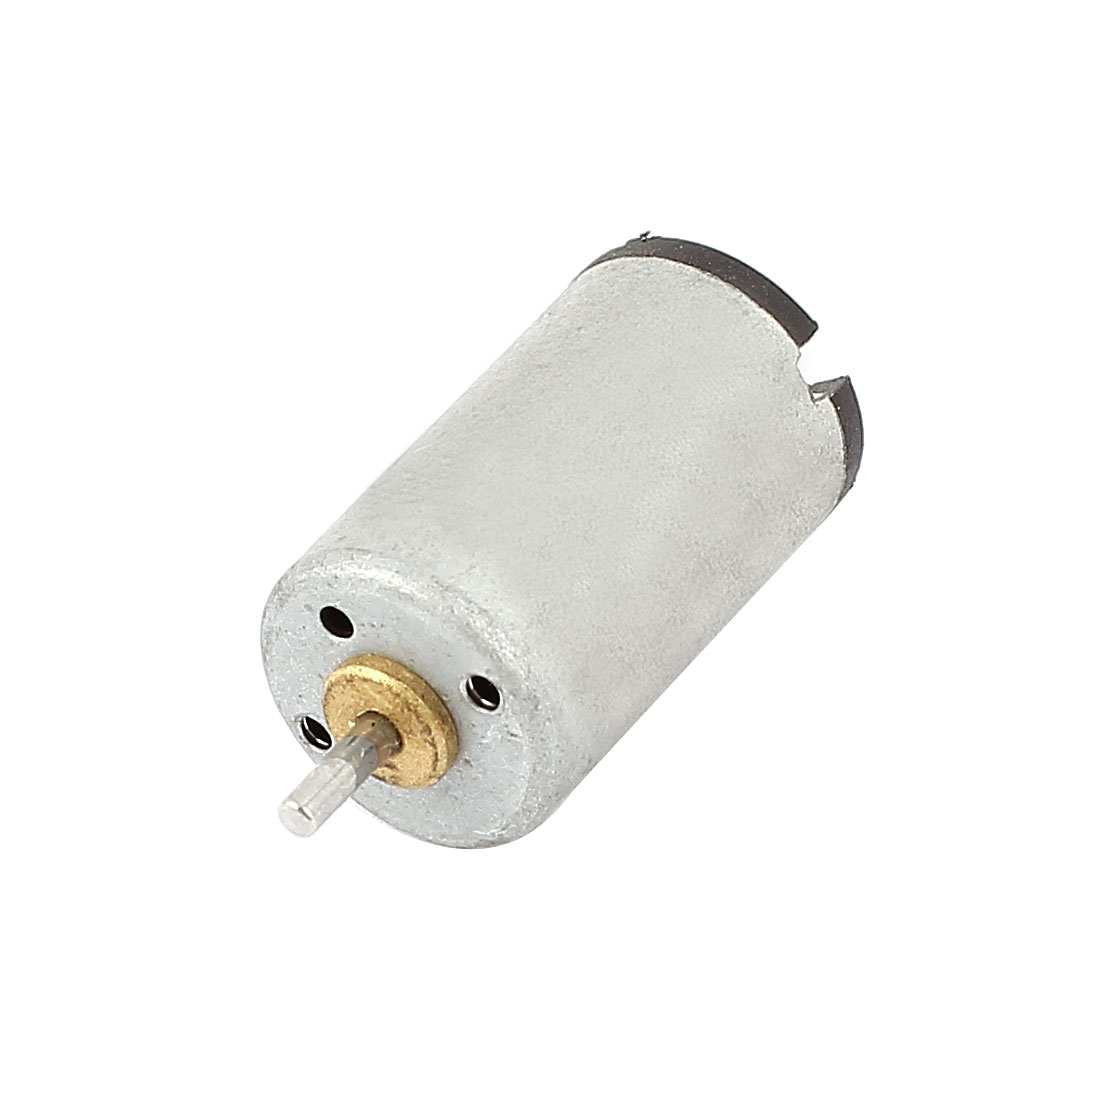 DC 1.5-6V 2000RPM 1.5mm Shaft Dia Micro Motor for DIY Electric Toy Car Ship